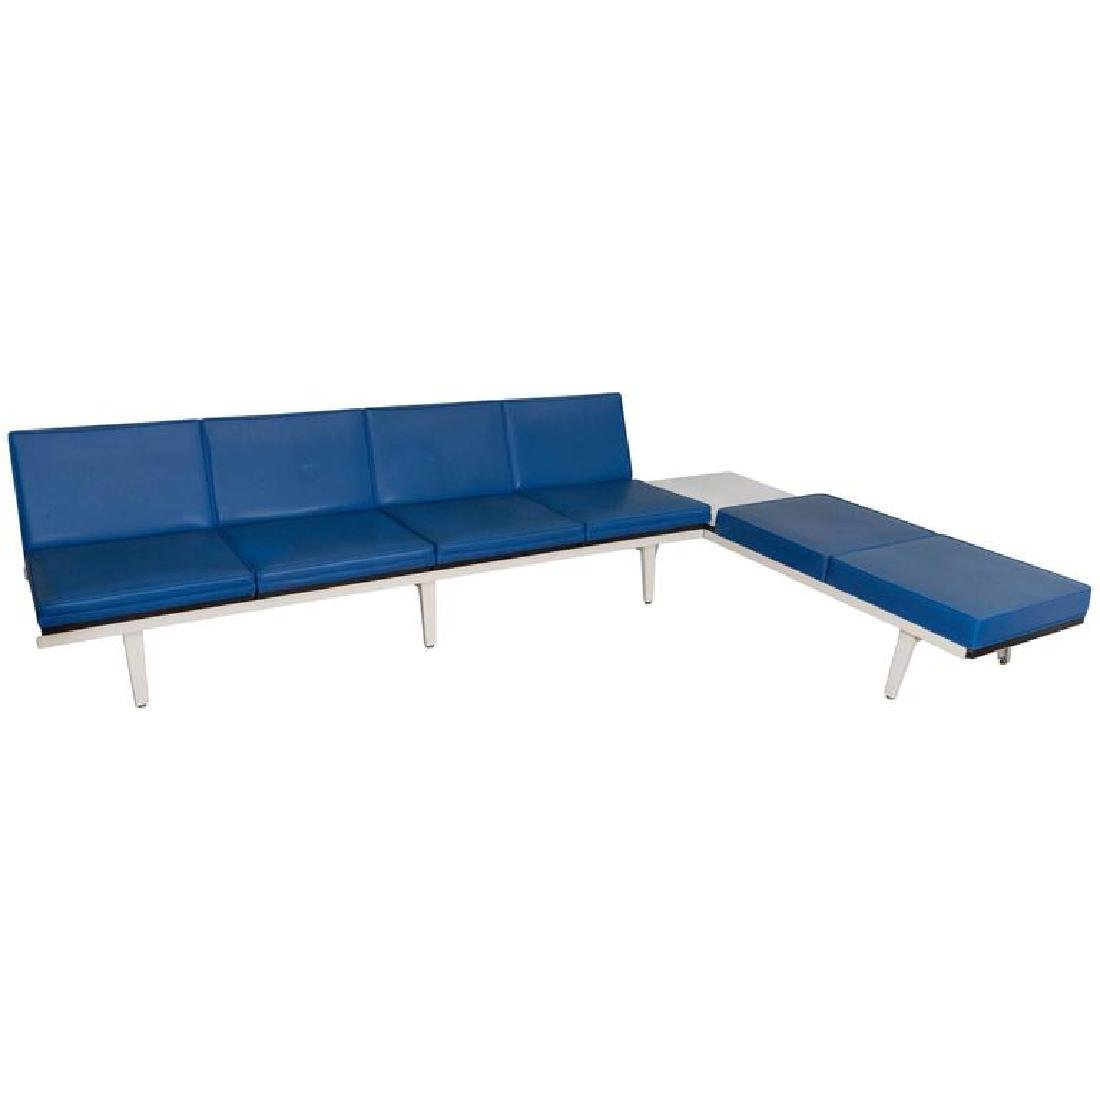 George Nelson for Herman Miller Sectional Sofa